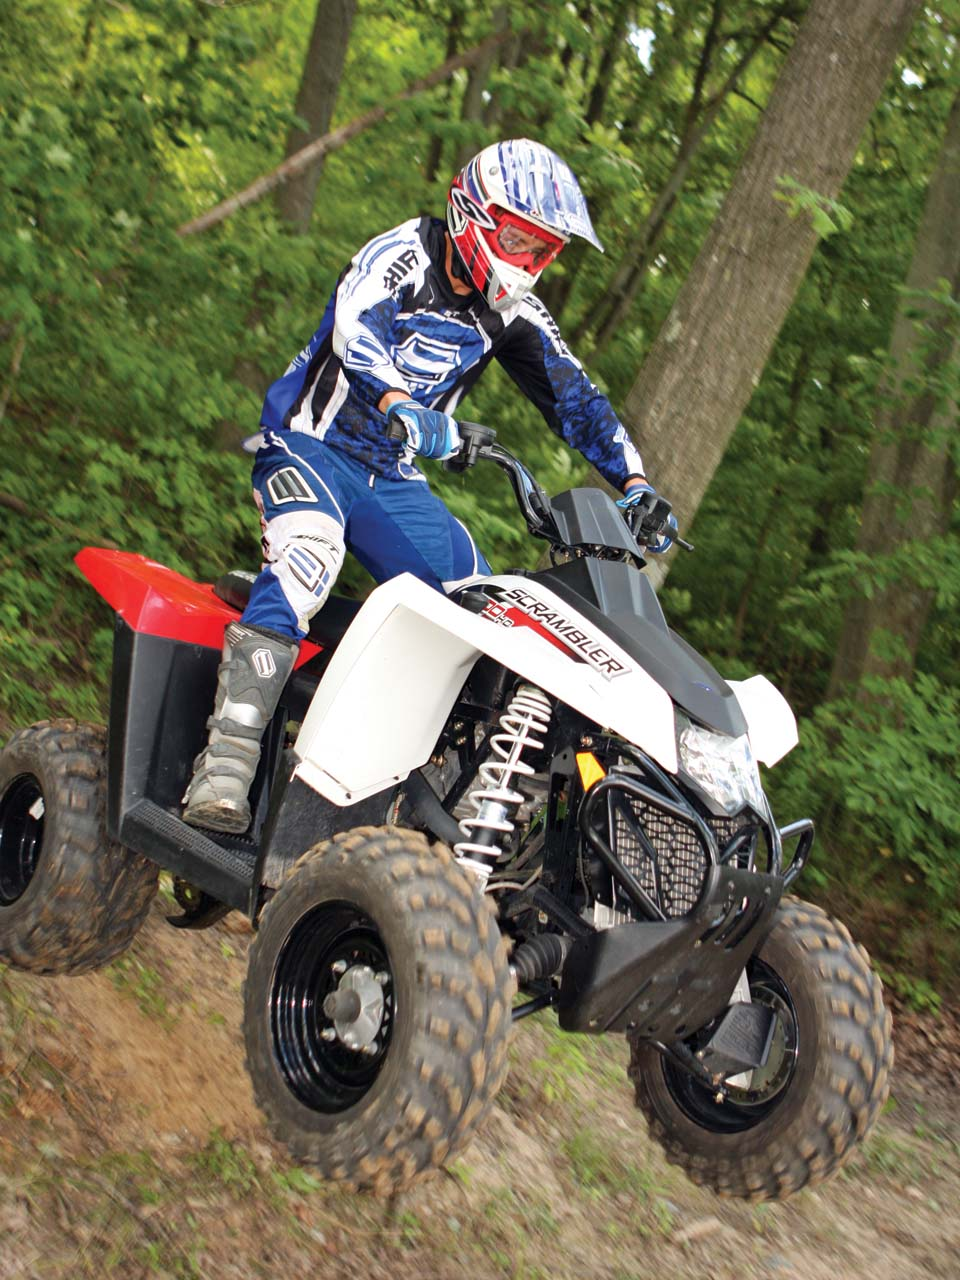 Polaris Scrambler 500 4x4 2006 images #121169